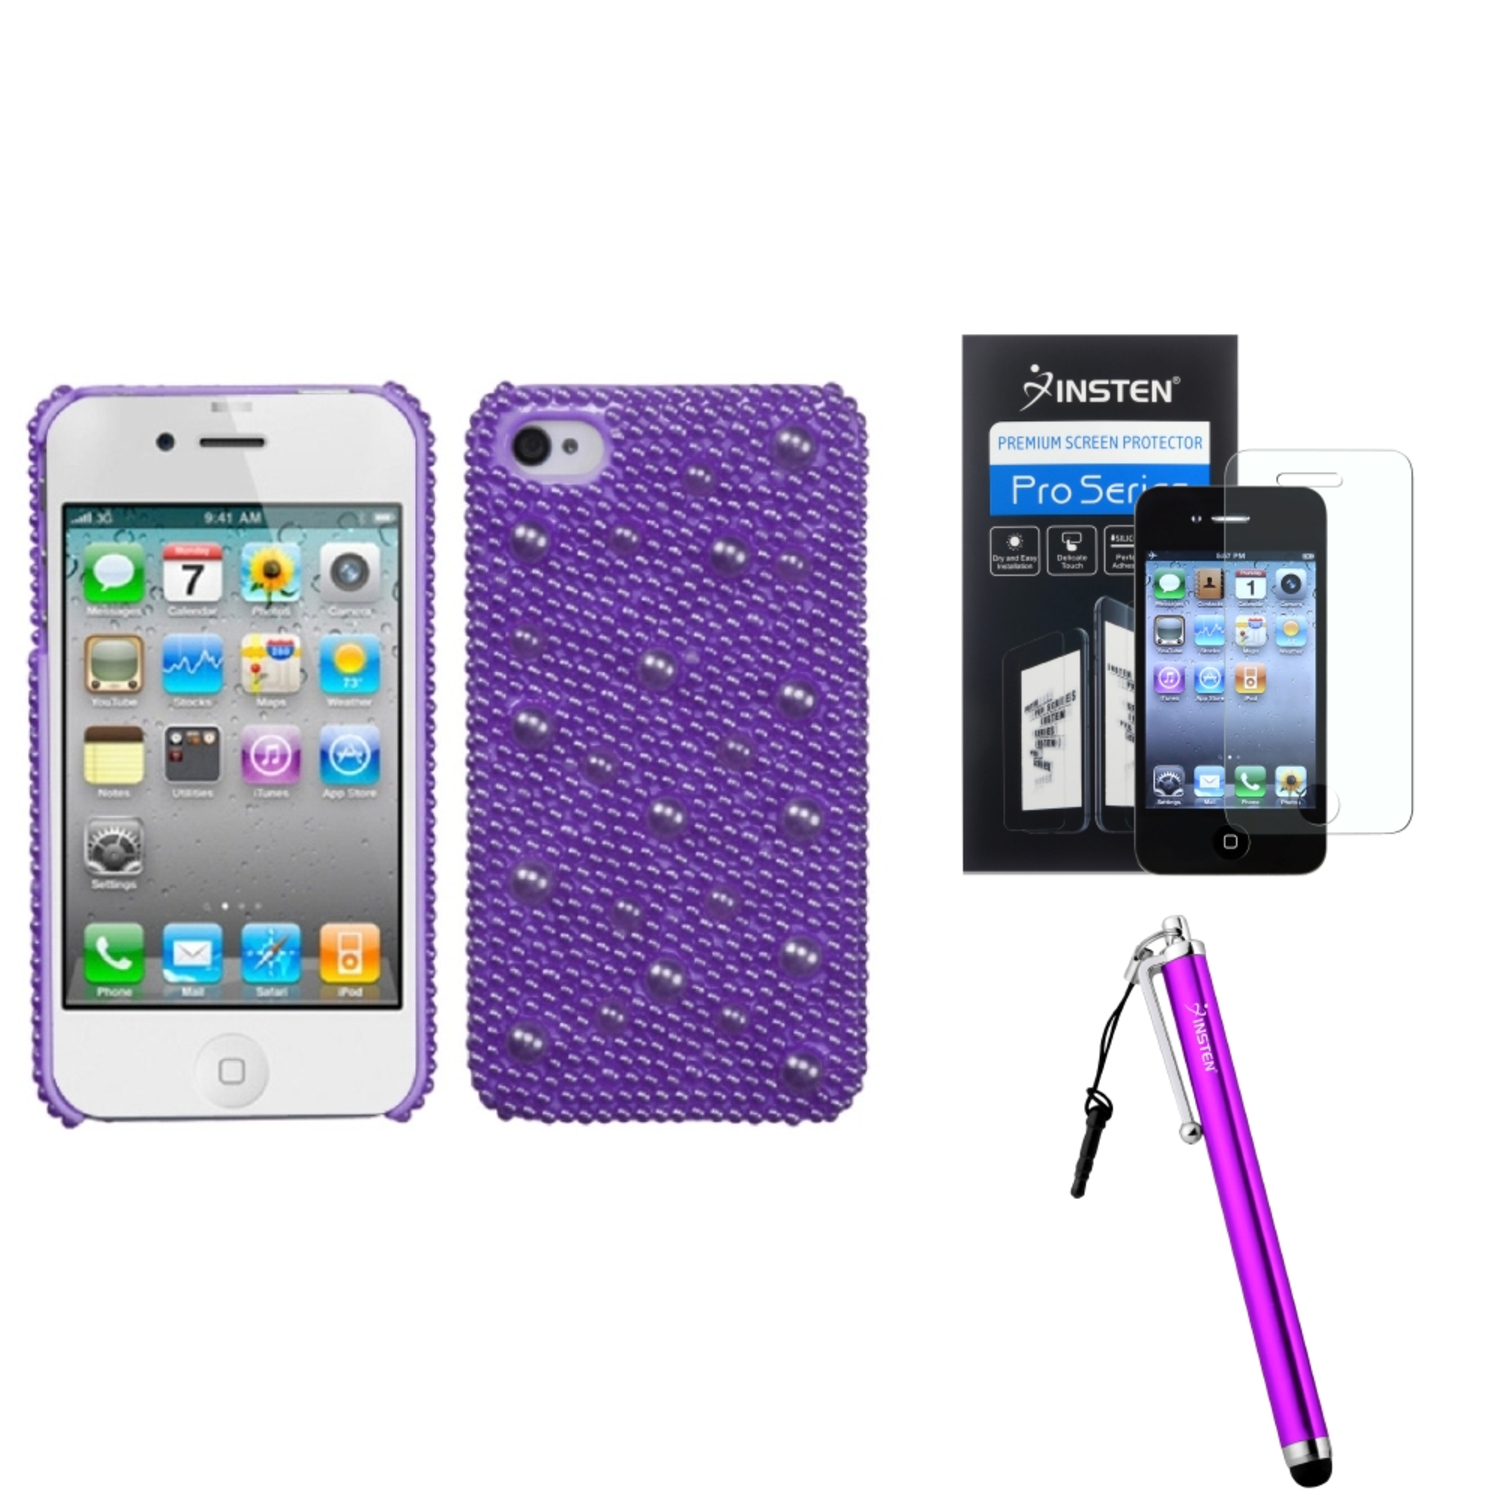 Insten Baby Purple Pearl Diamante Back Case For Apple iPhone 4 4S + Stylus + Screen Protector